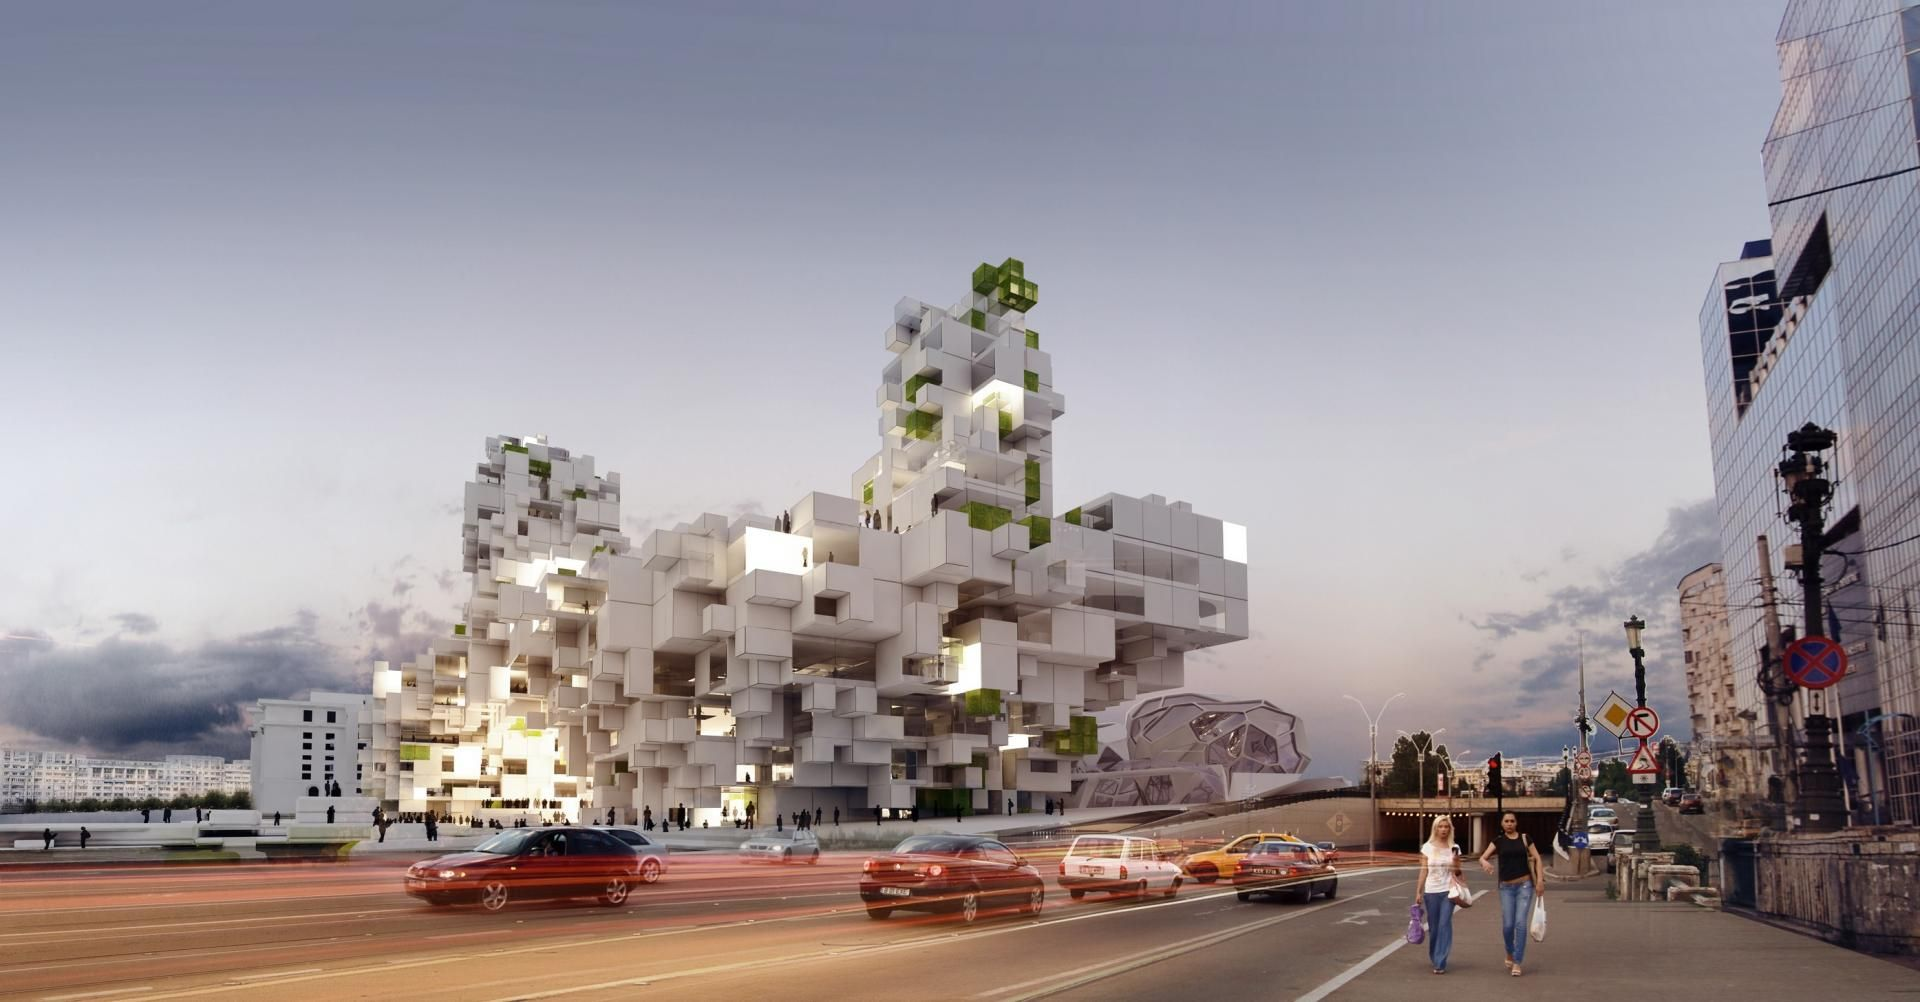 Modern Architecture News digital #university #architecture news -in this particular context